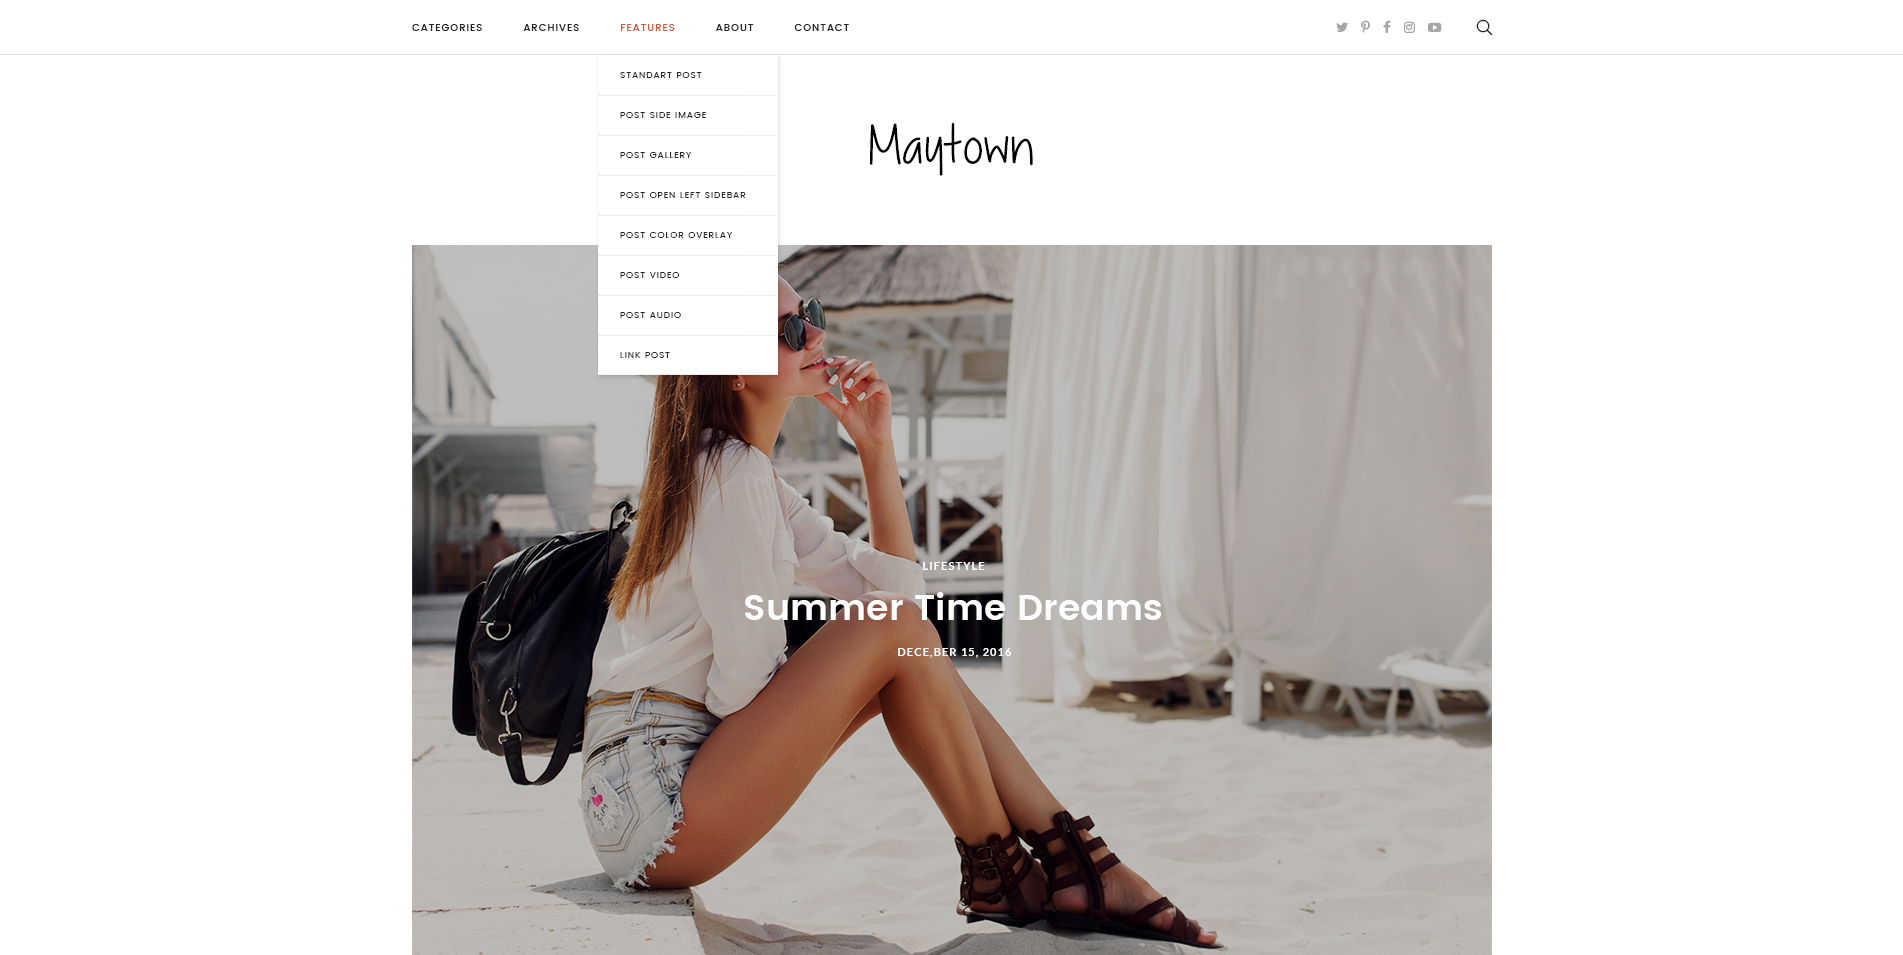 maytown personals Help, faq, abuse, legal avoid scams & fraud personal safety tips terms of use  privacy policy system status about craigslist craigslist is hiring in sf.